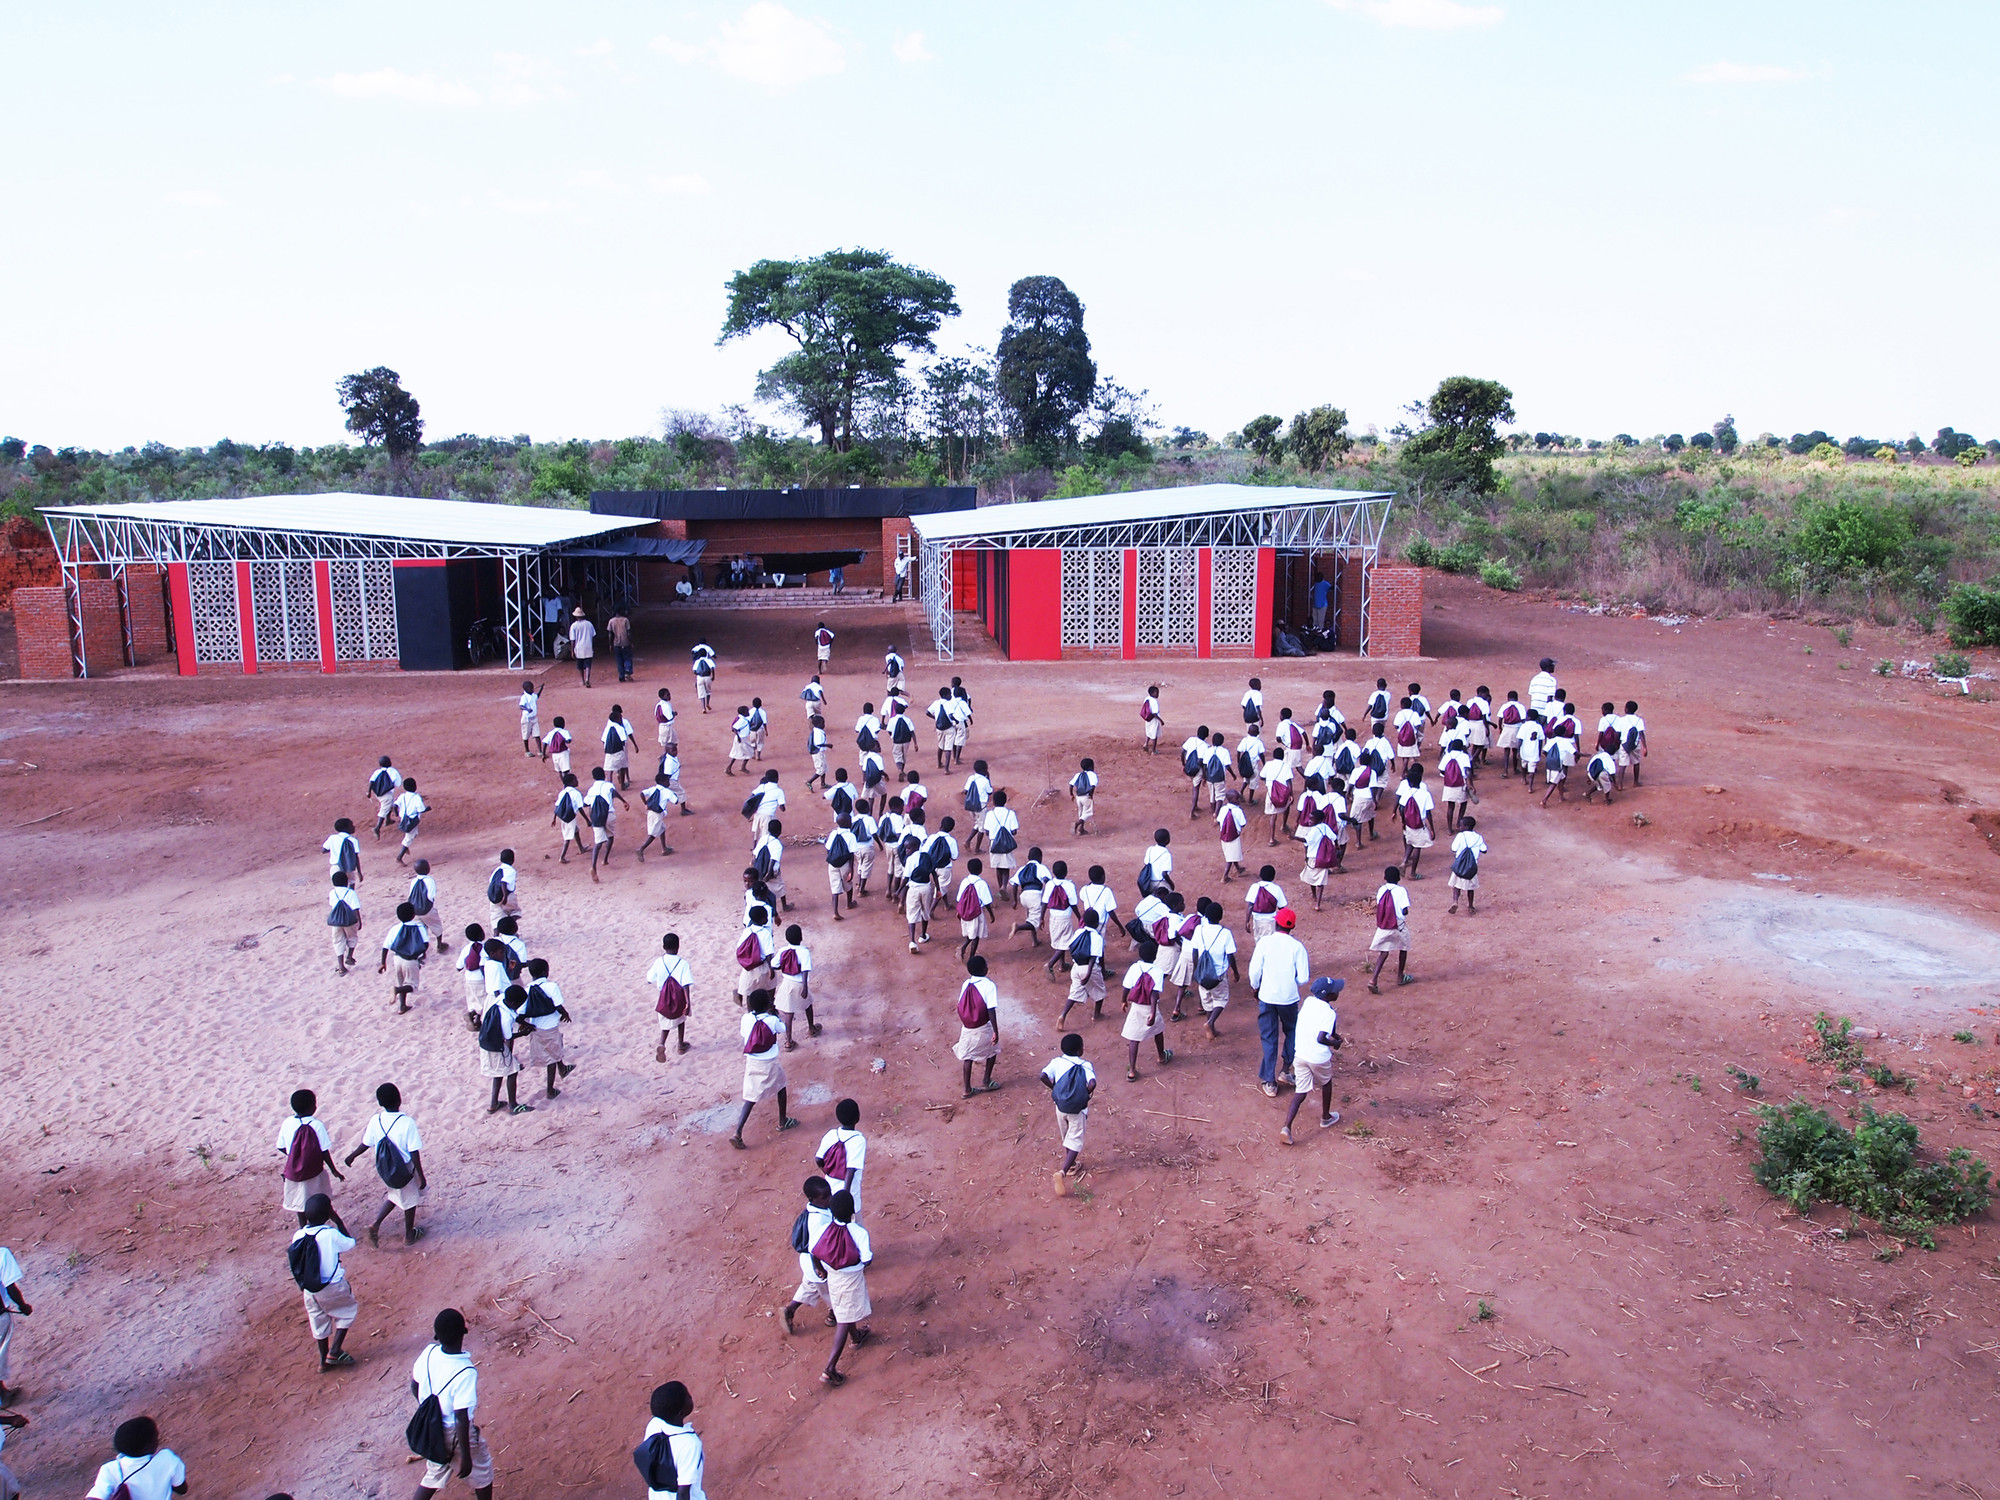 The Legson Kayira Community Center & Primary School / Architecture for a Change, Courtesy of Architecture for a Change